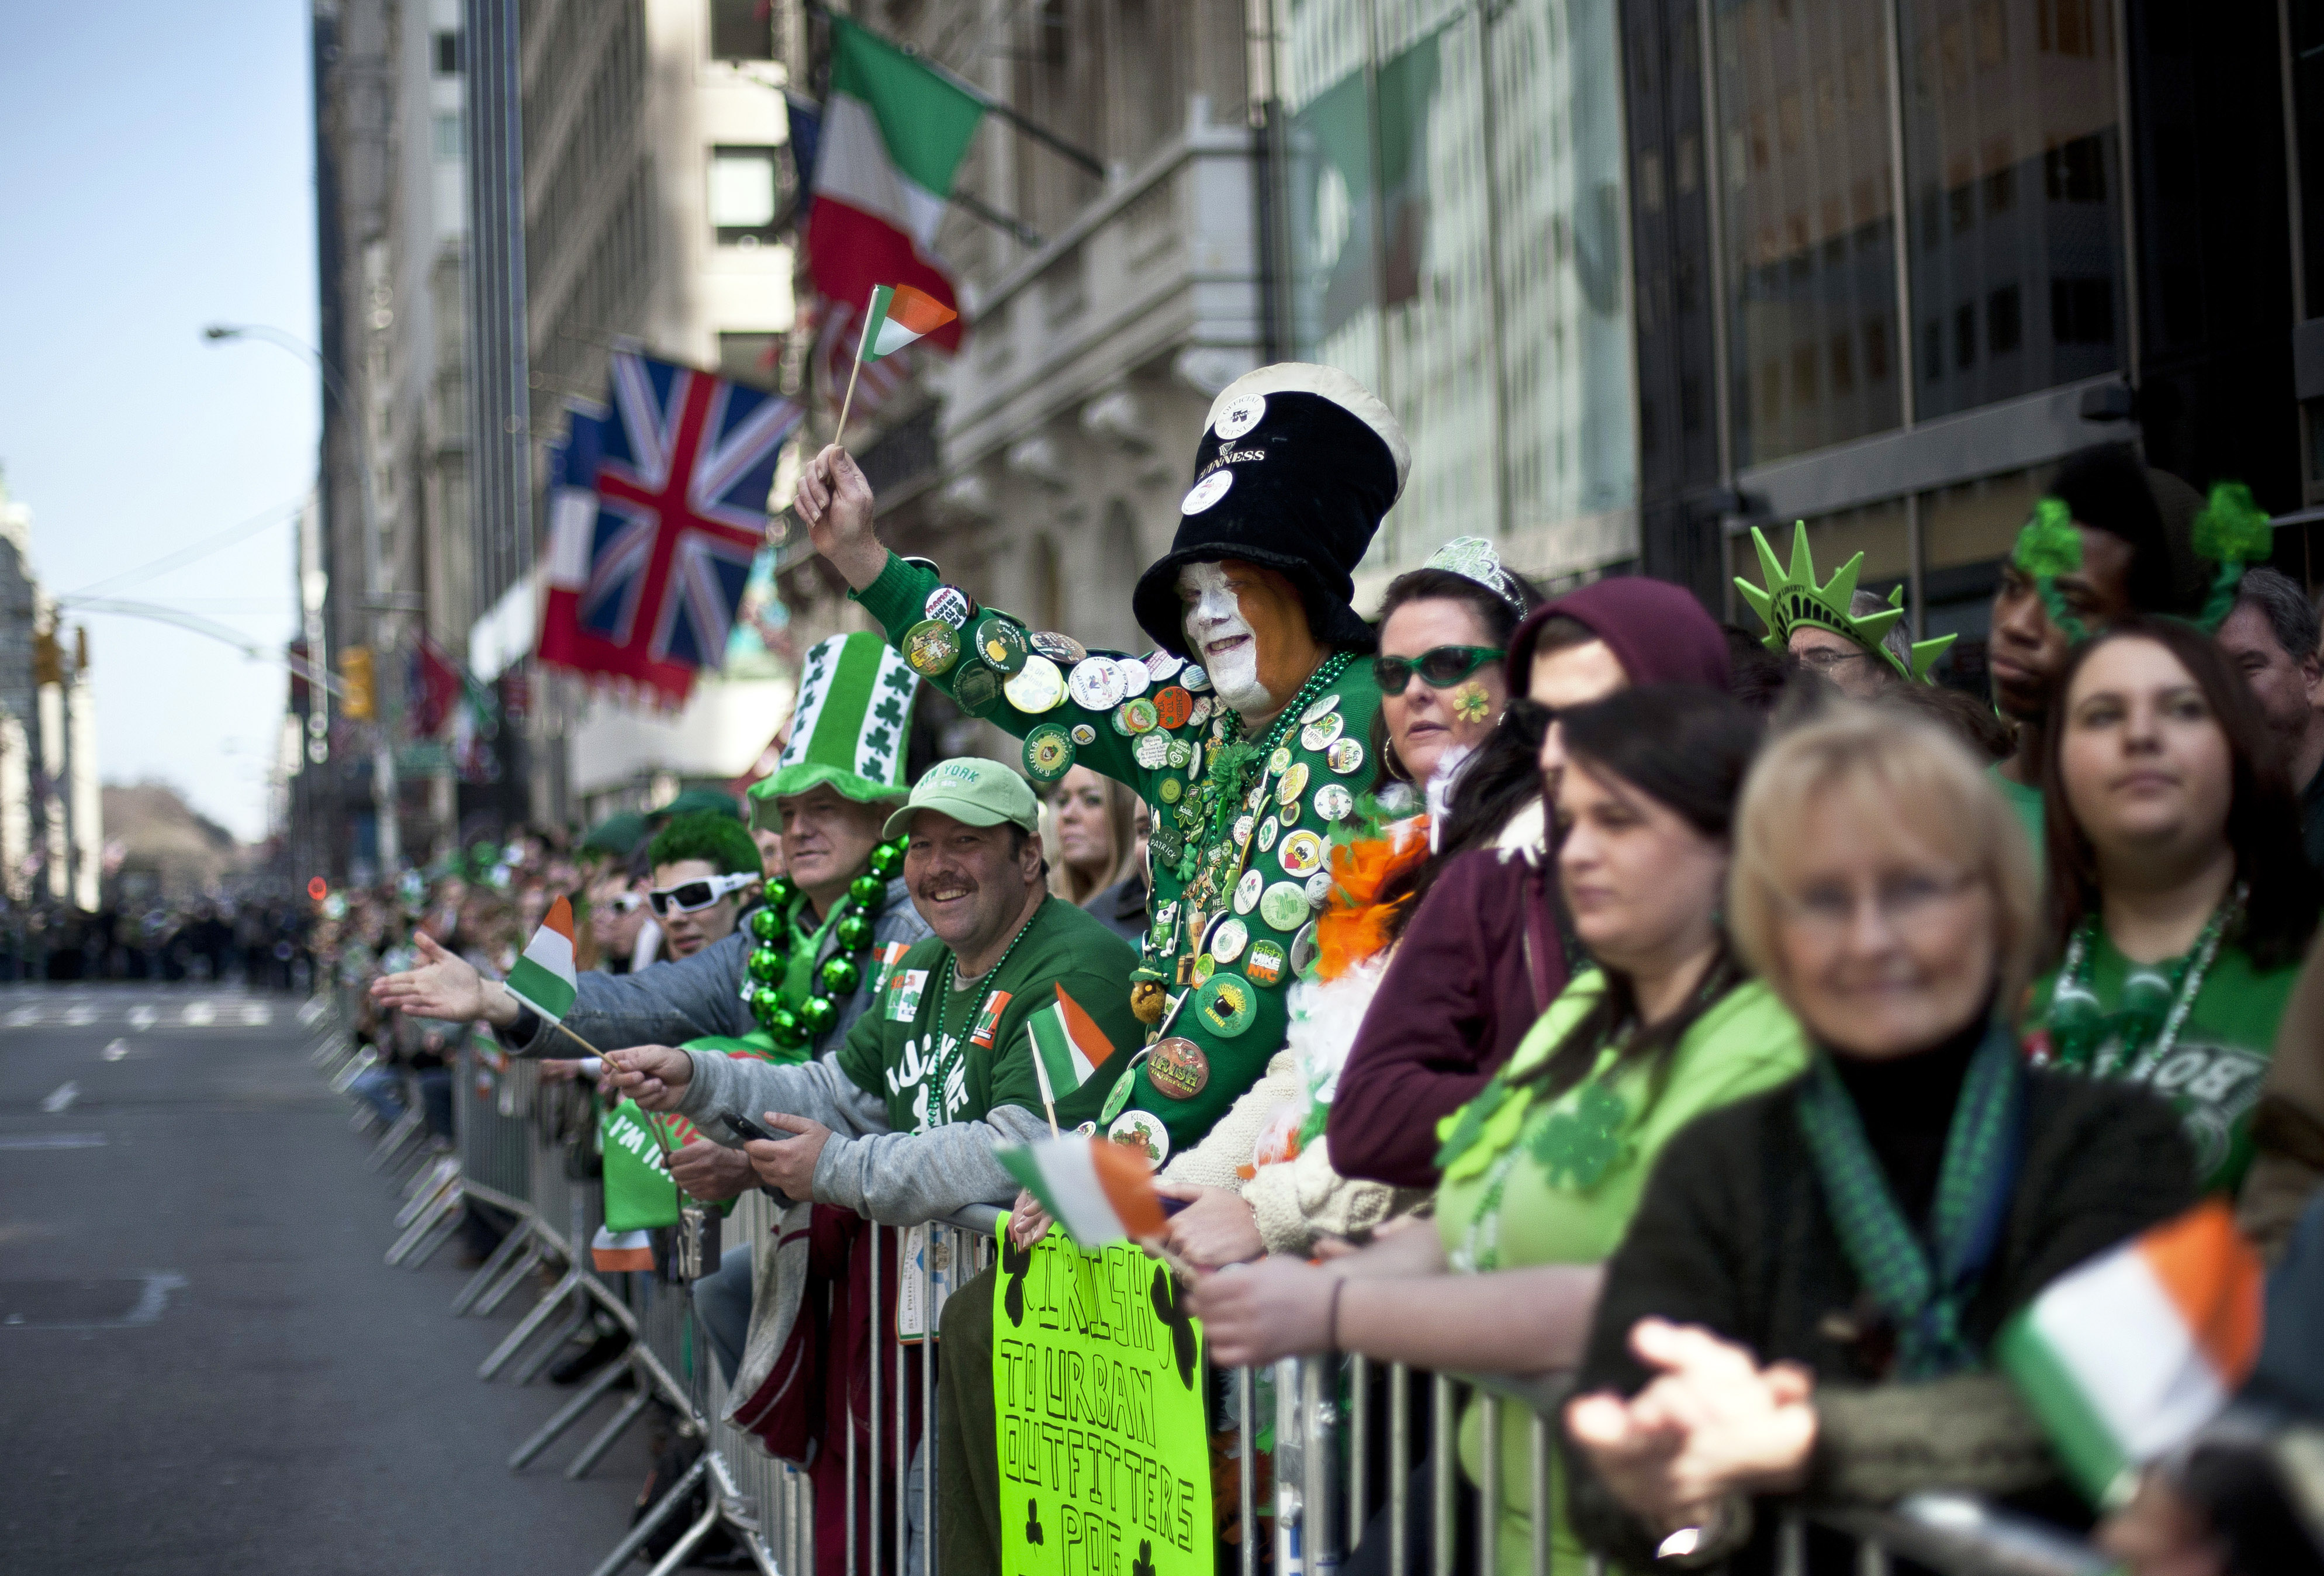 New York City Holds Annual St. Patrick's Day Parade